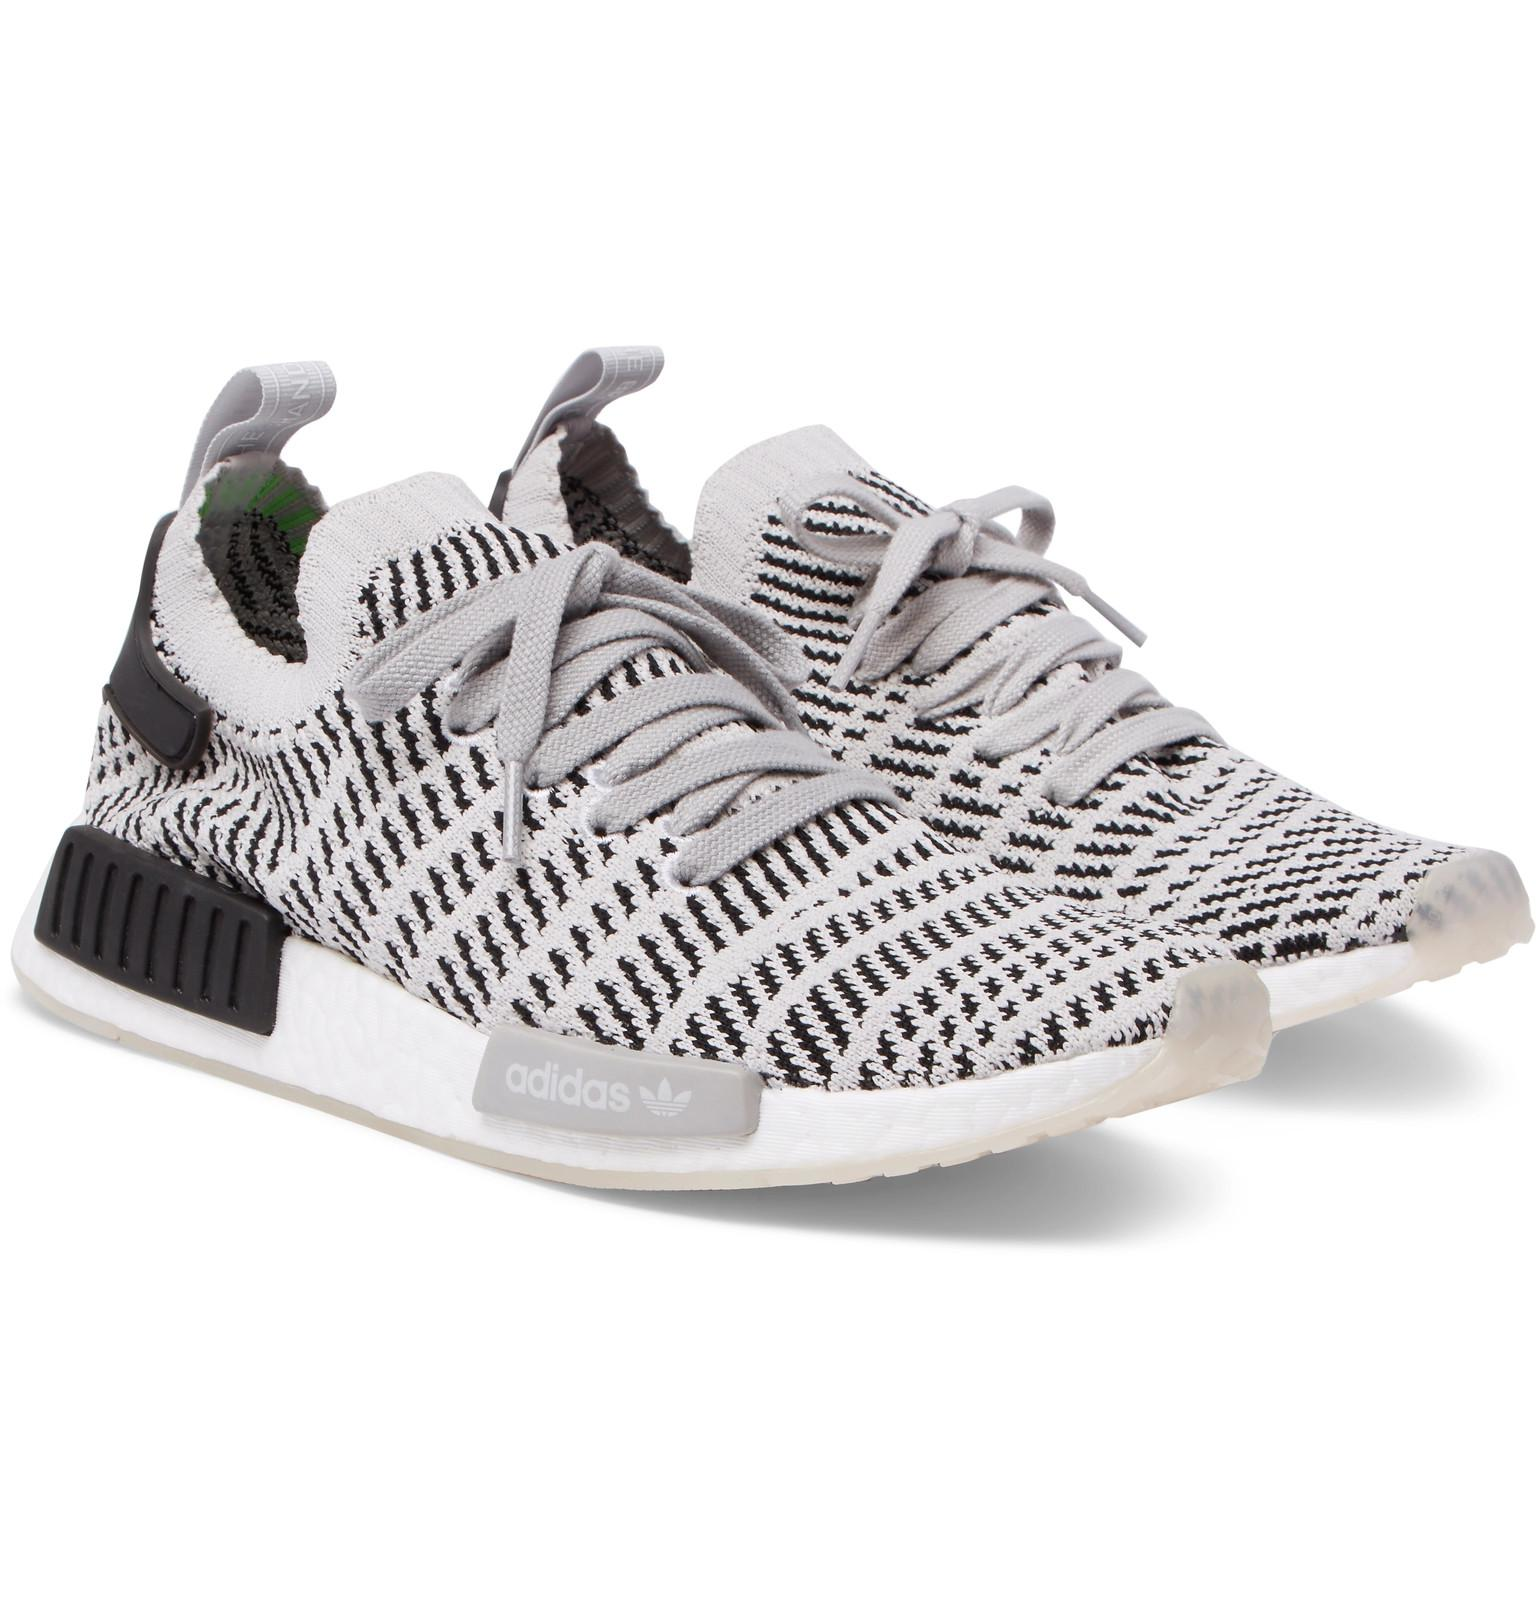 77cc4d31d adidas Originals Nmd R1 Stealth Primeknit Sneakers in Gray for Men ...